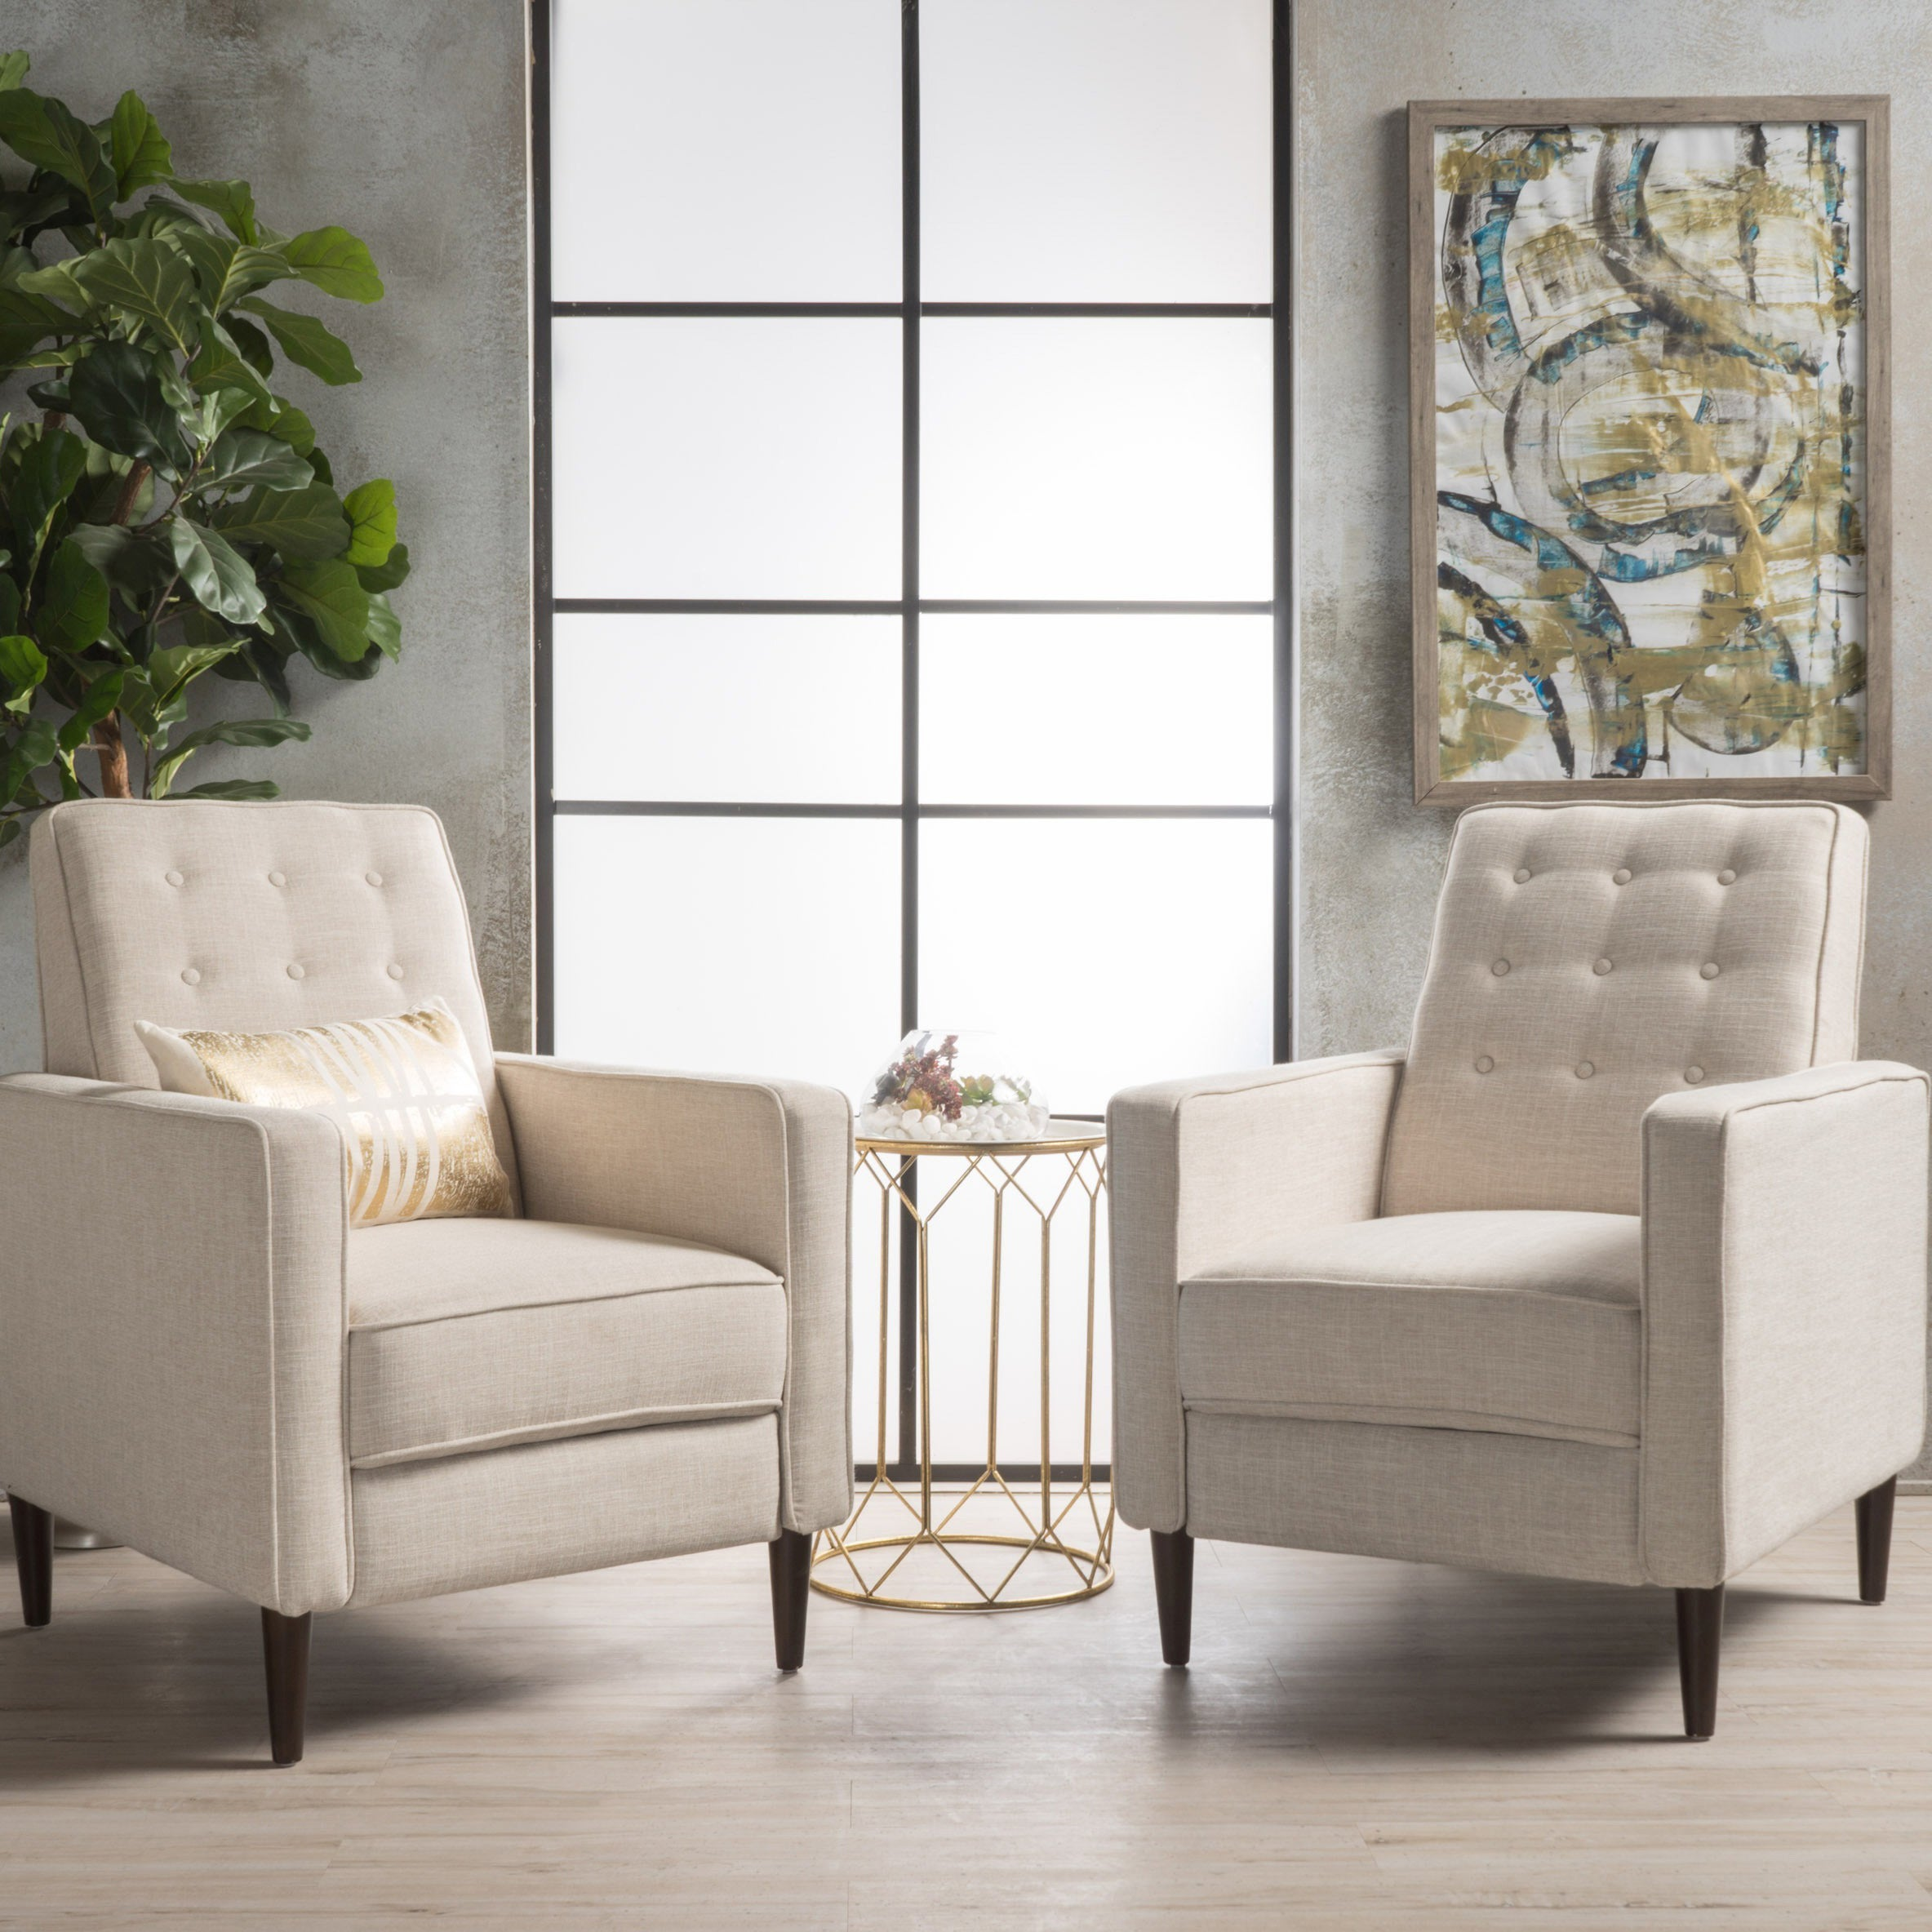 Buy living room chairs sale ends in 1 day online at overstock our living room chairs and couches modern living room chairs sale